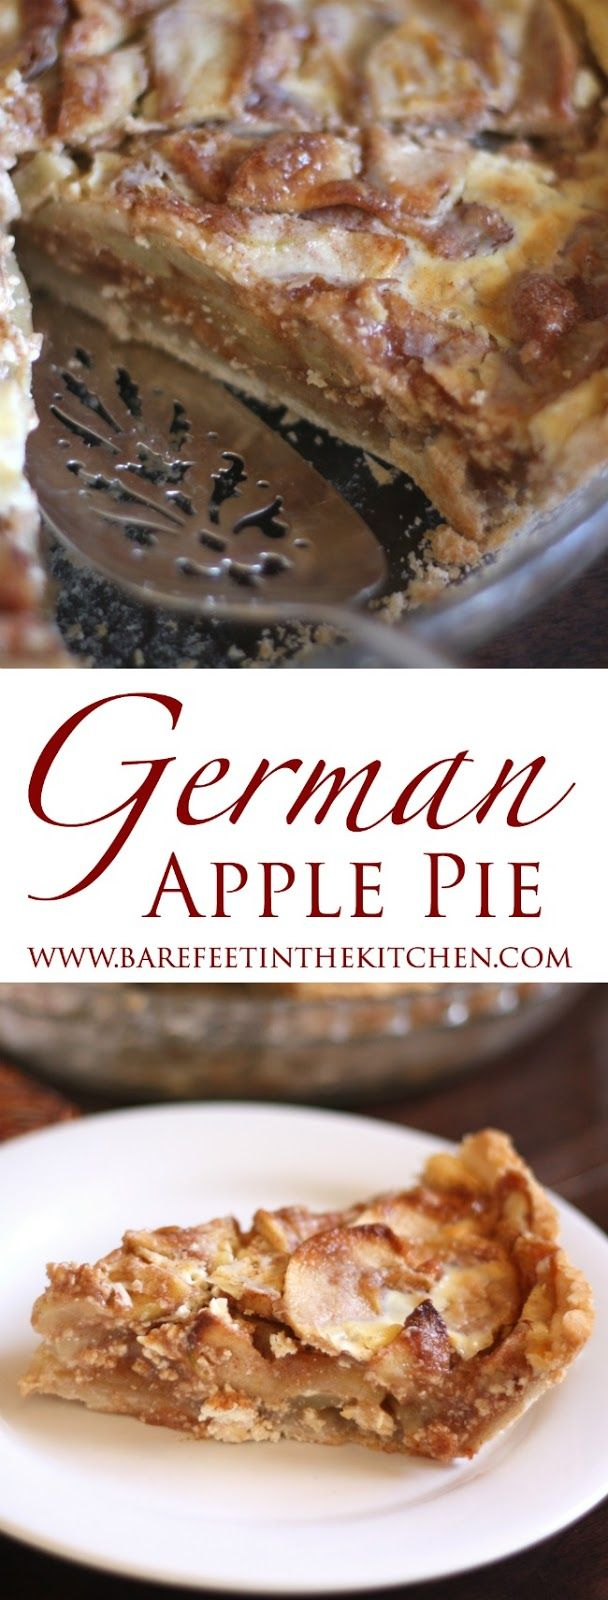 German Apple Pie is like no other apple pie you've ever tasted! – get the recipe at barefeetinthekitc.